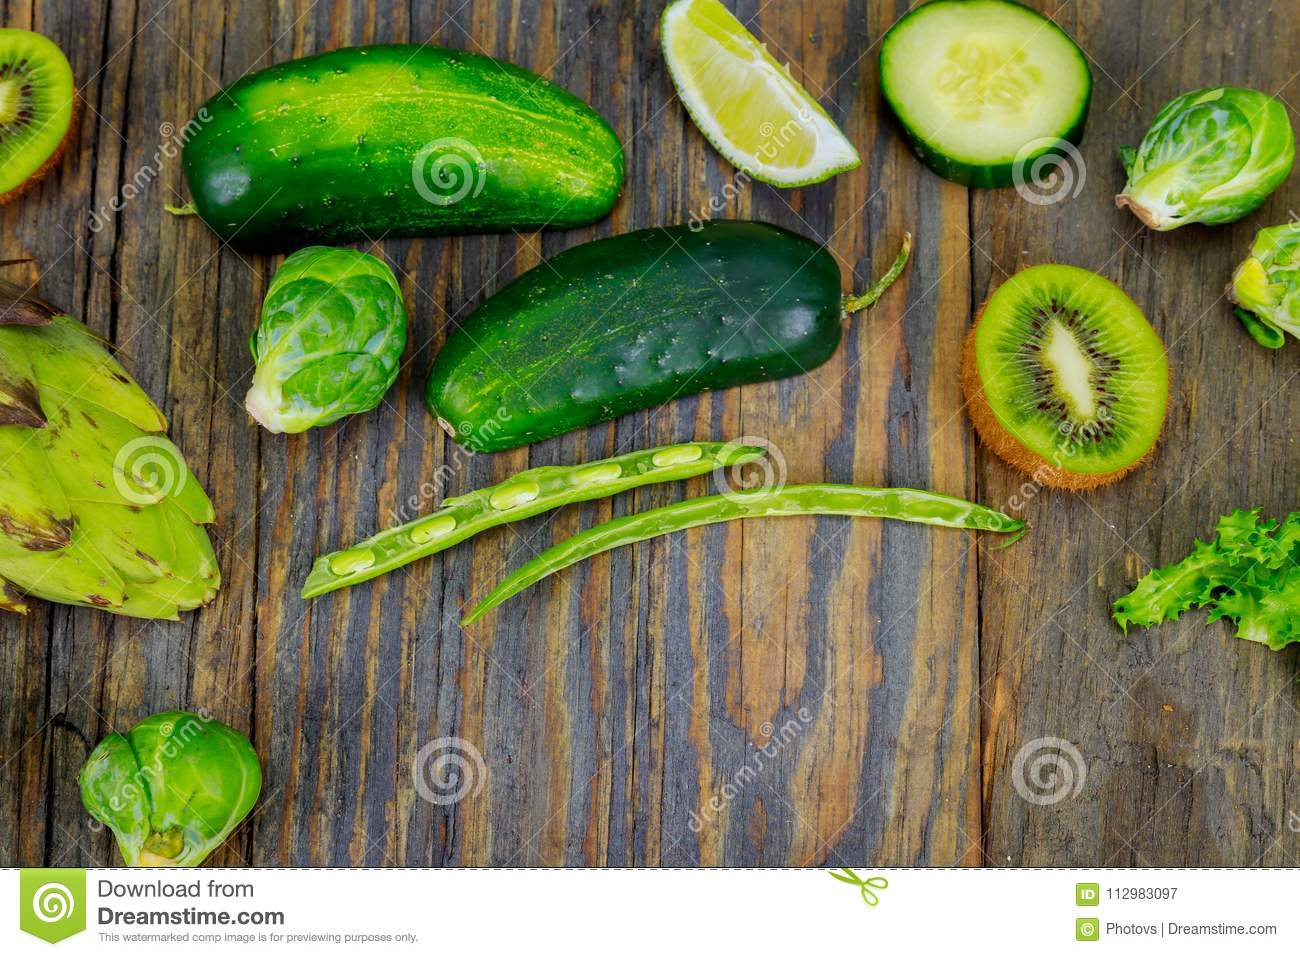 Fresh raw vegetable ingredients for healthy cooking or salad making with rustic olive wood board in center, top view, copy space.